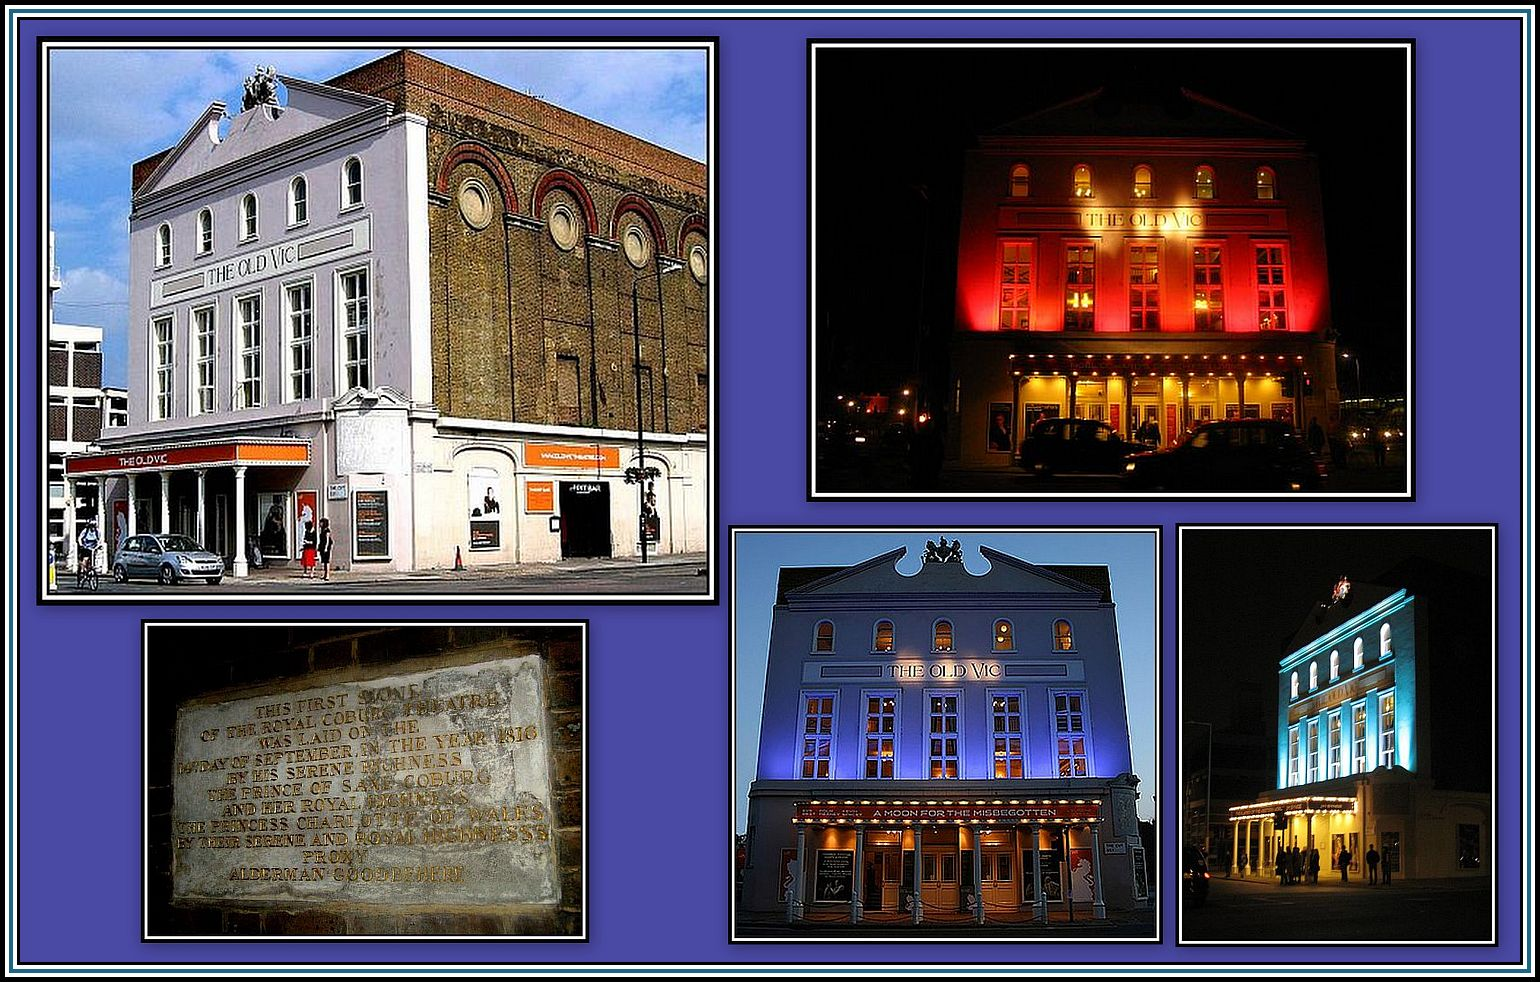 The Old Vic Collage